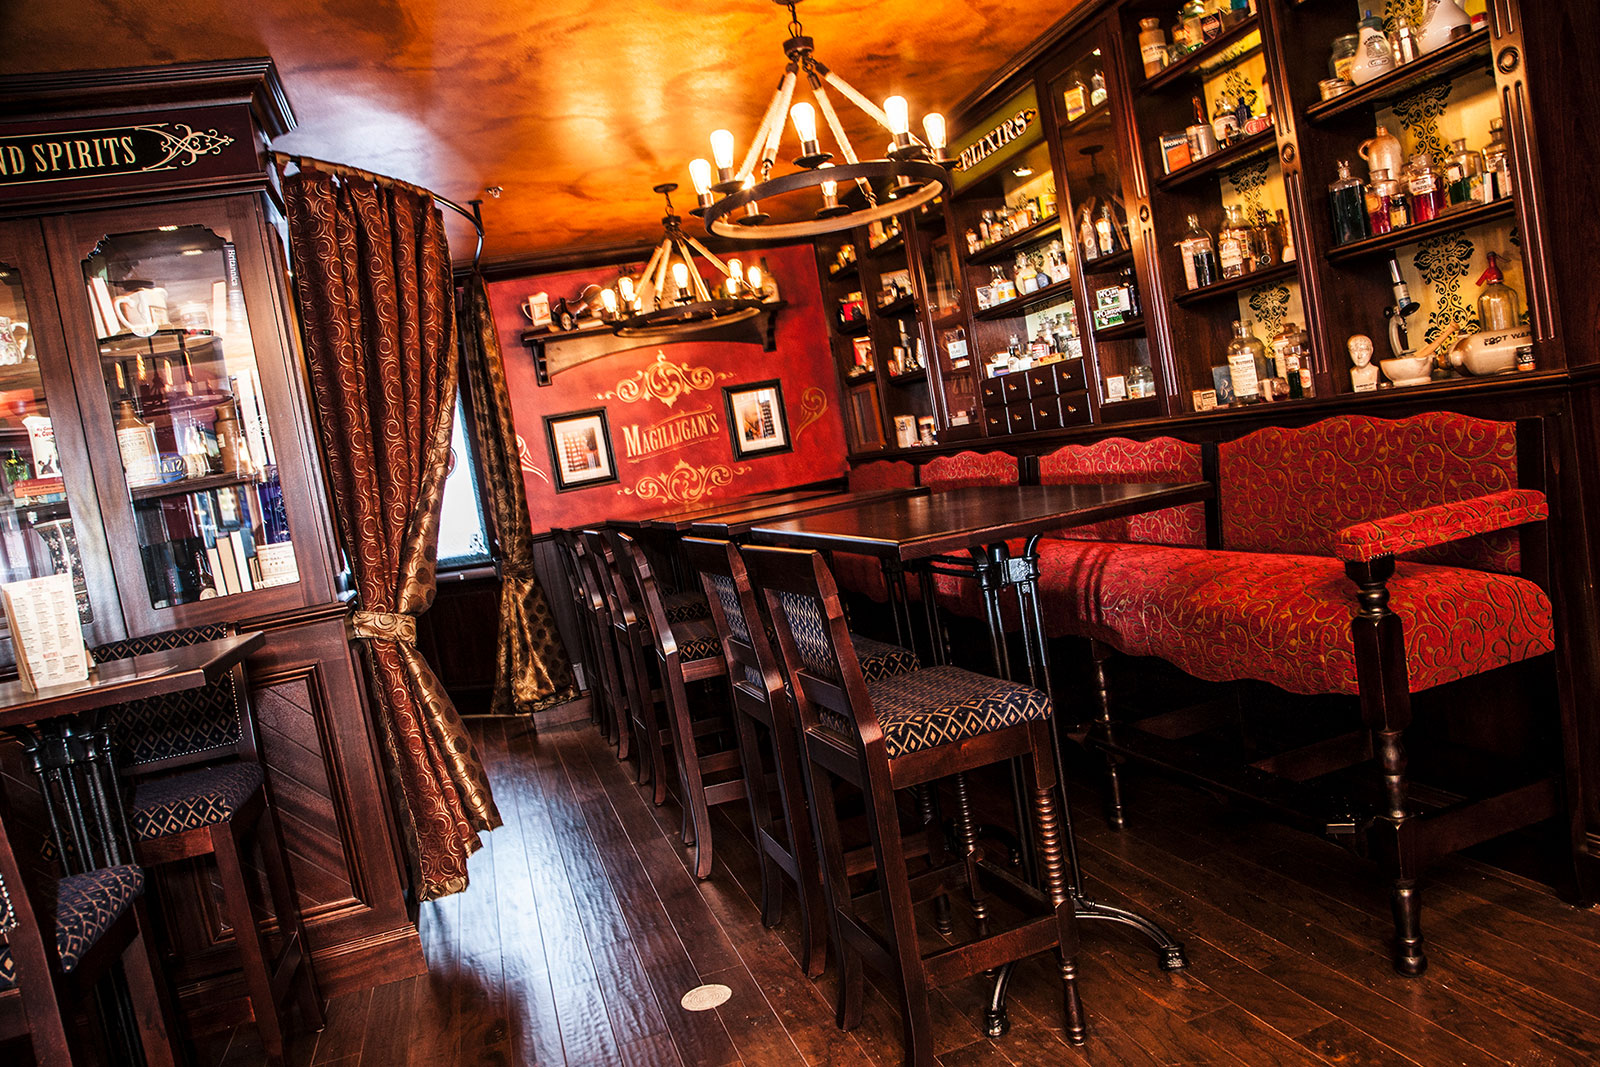 Doc Magilligan's Irish Pub, Irish Food and Craft Beer in Niagara Falls, Ontario